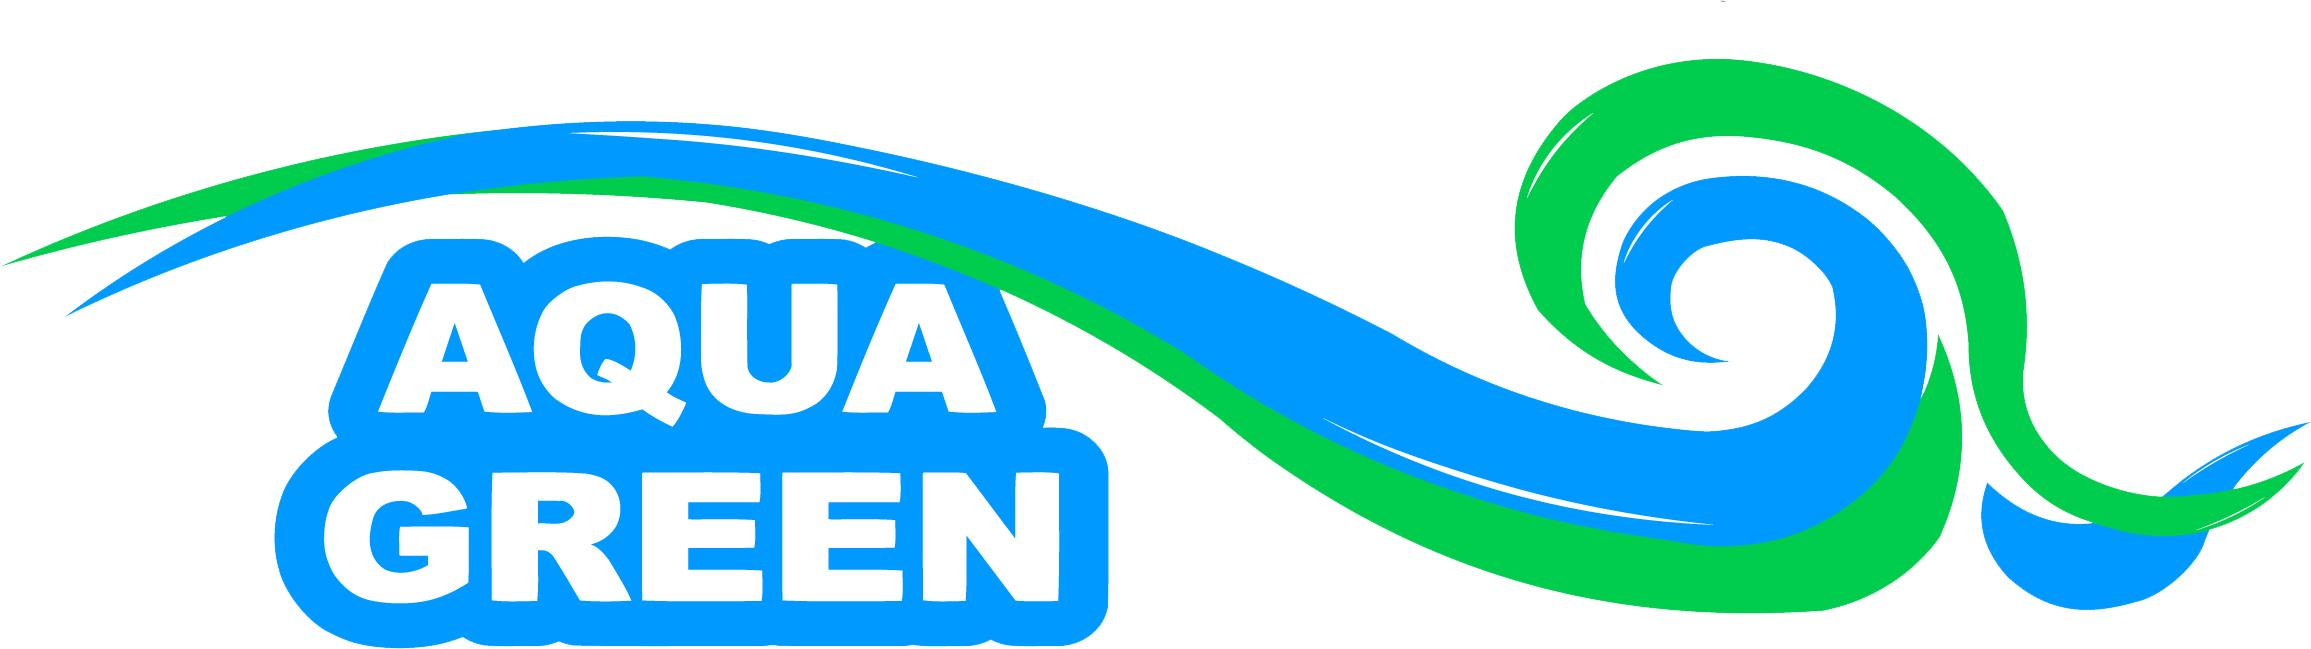 aquagreen logo_1_3